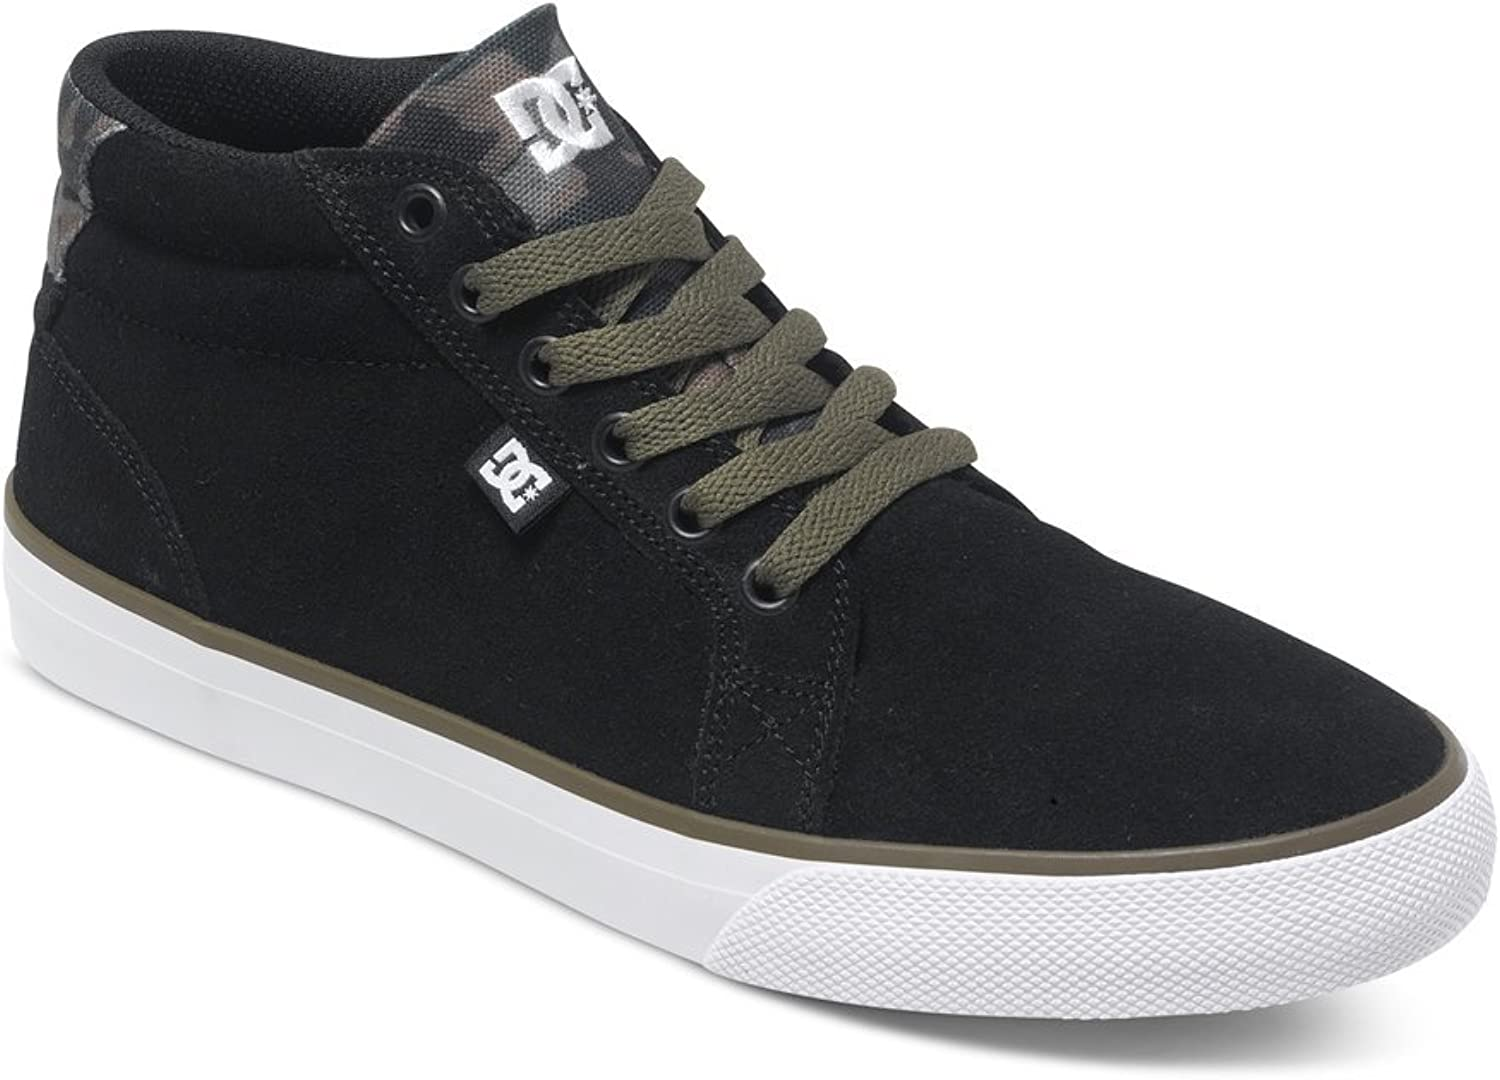 DC Council Mid Sd M shoes Bfy, Men's Hi-Top Sneakers